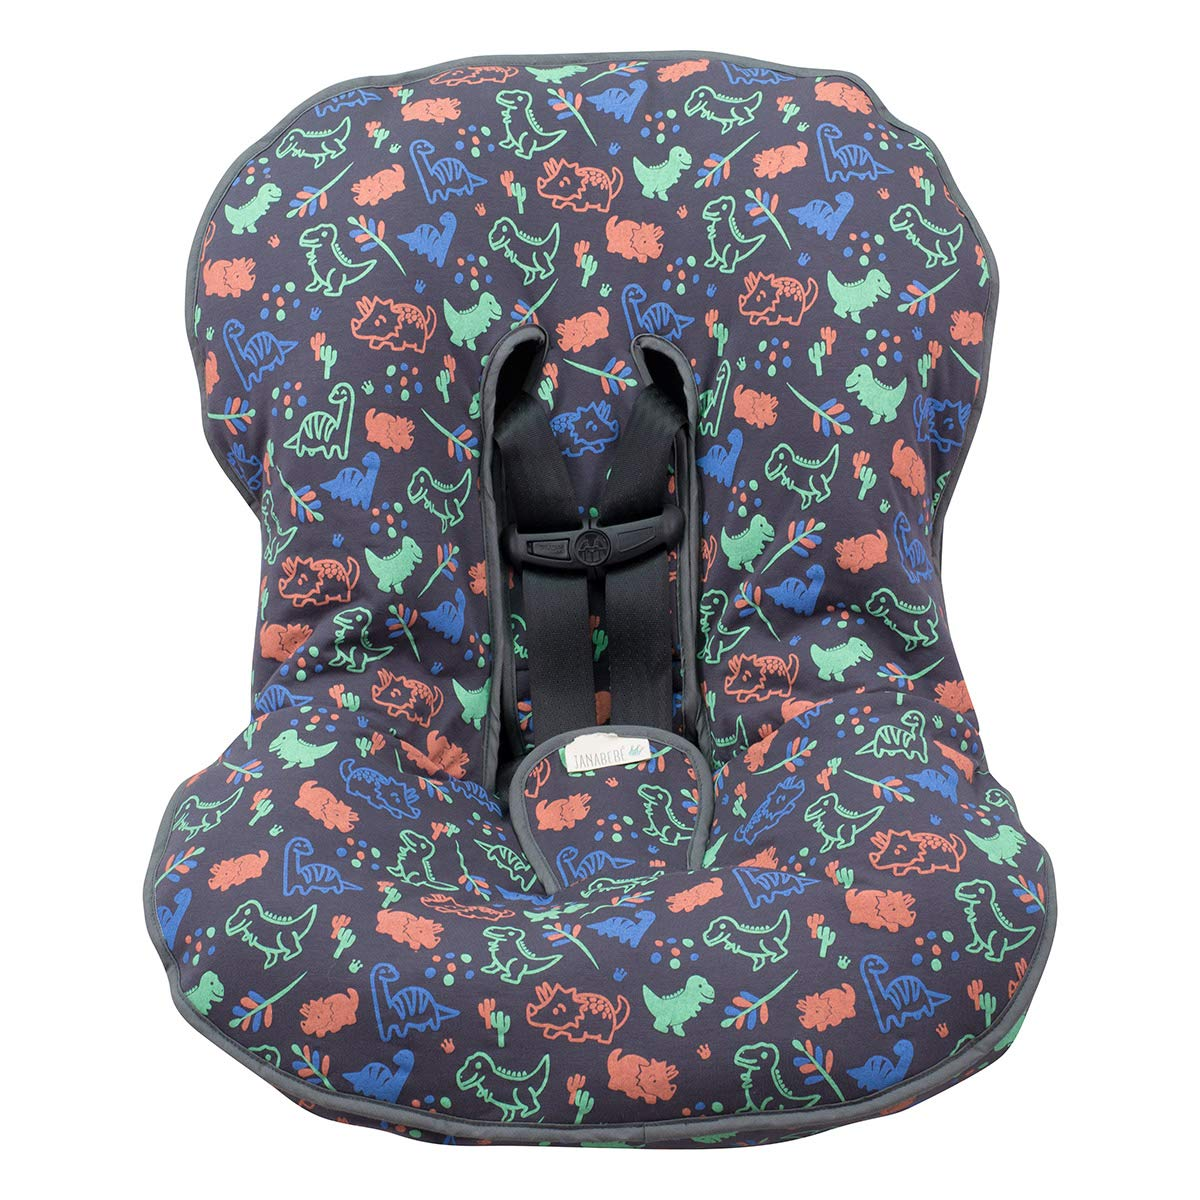 JANABEBÉ Universal Padded Cover Liner for Baby Carriers and CAR SEAT (Maxi COSI MICO, CHICCO, BRITAX, ETC) (Happy Dino)